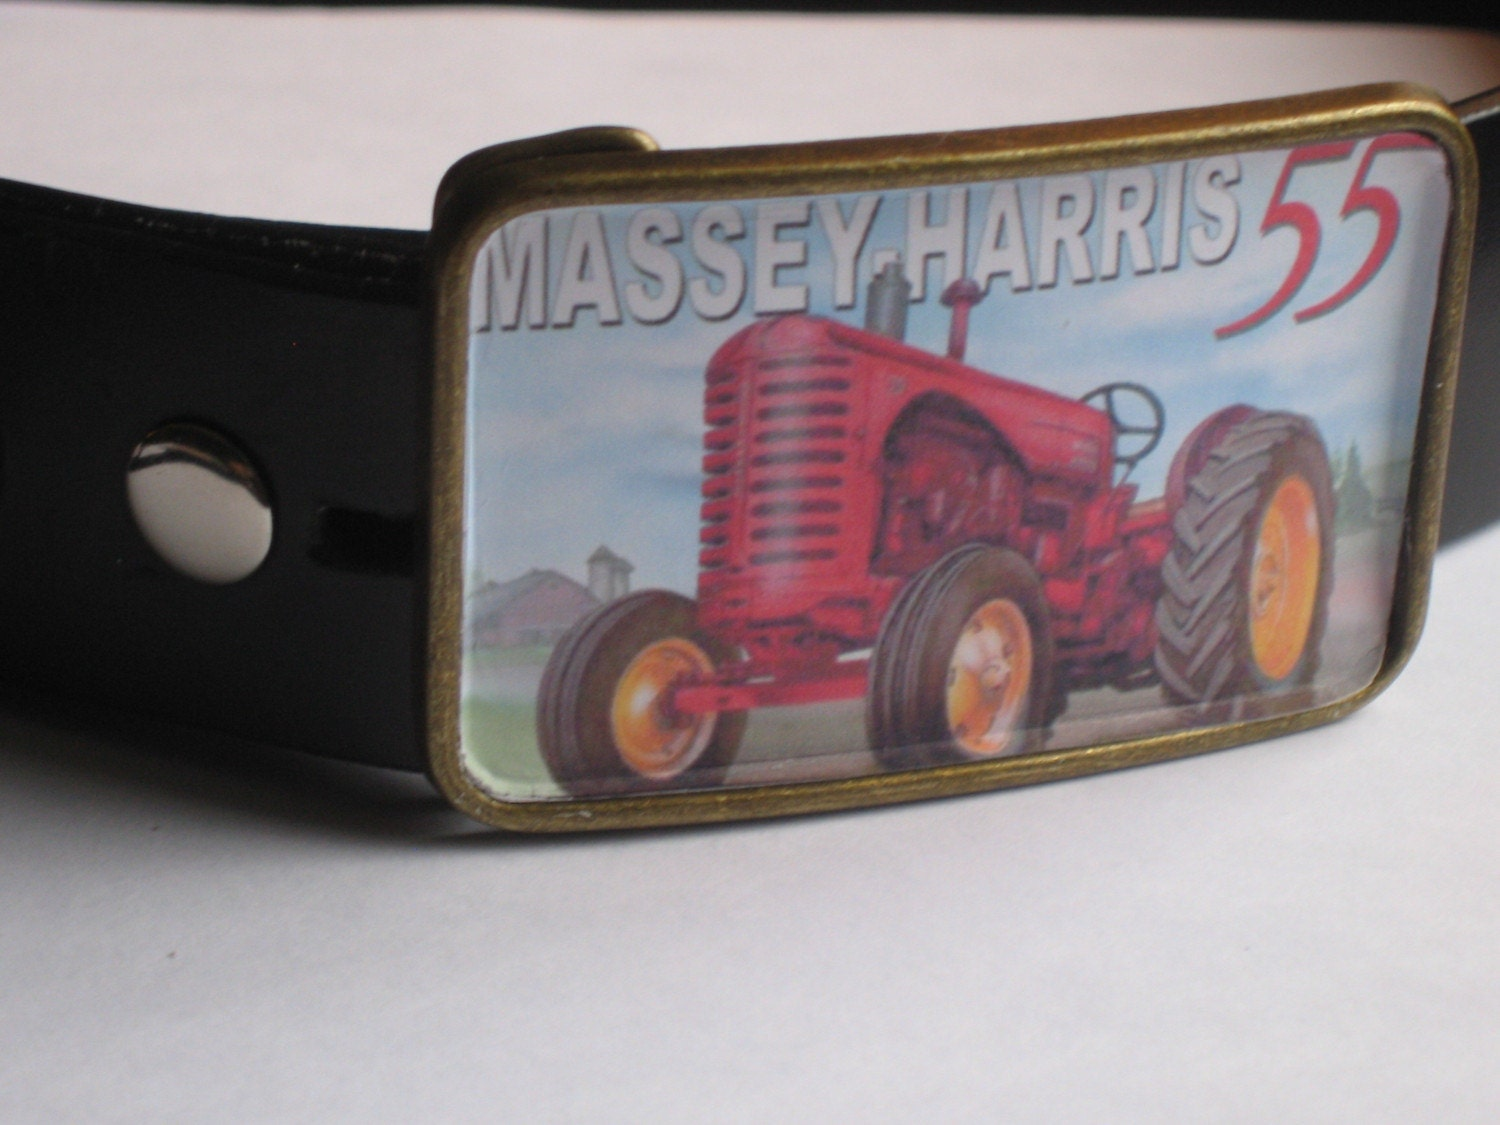 FREE SHIPPING Massey Harris 55 Vinatge Finish Belt Buckle by Jamie Riley Handamade cool travel gift BUCKLE WILL BE COMPLETED WITH GLASS RESIN ONCE ORDER IS FINAL GIFT WRAP INCLUDED  and FREE SHIPPING Tractor Farm